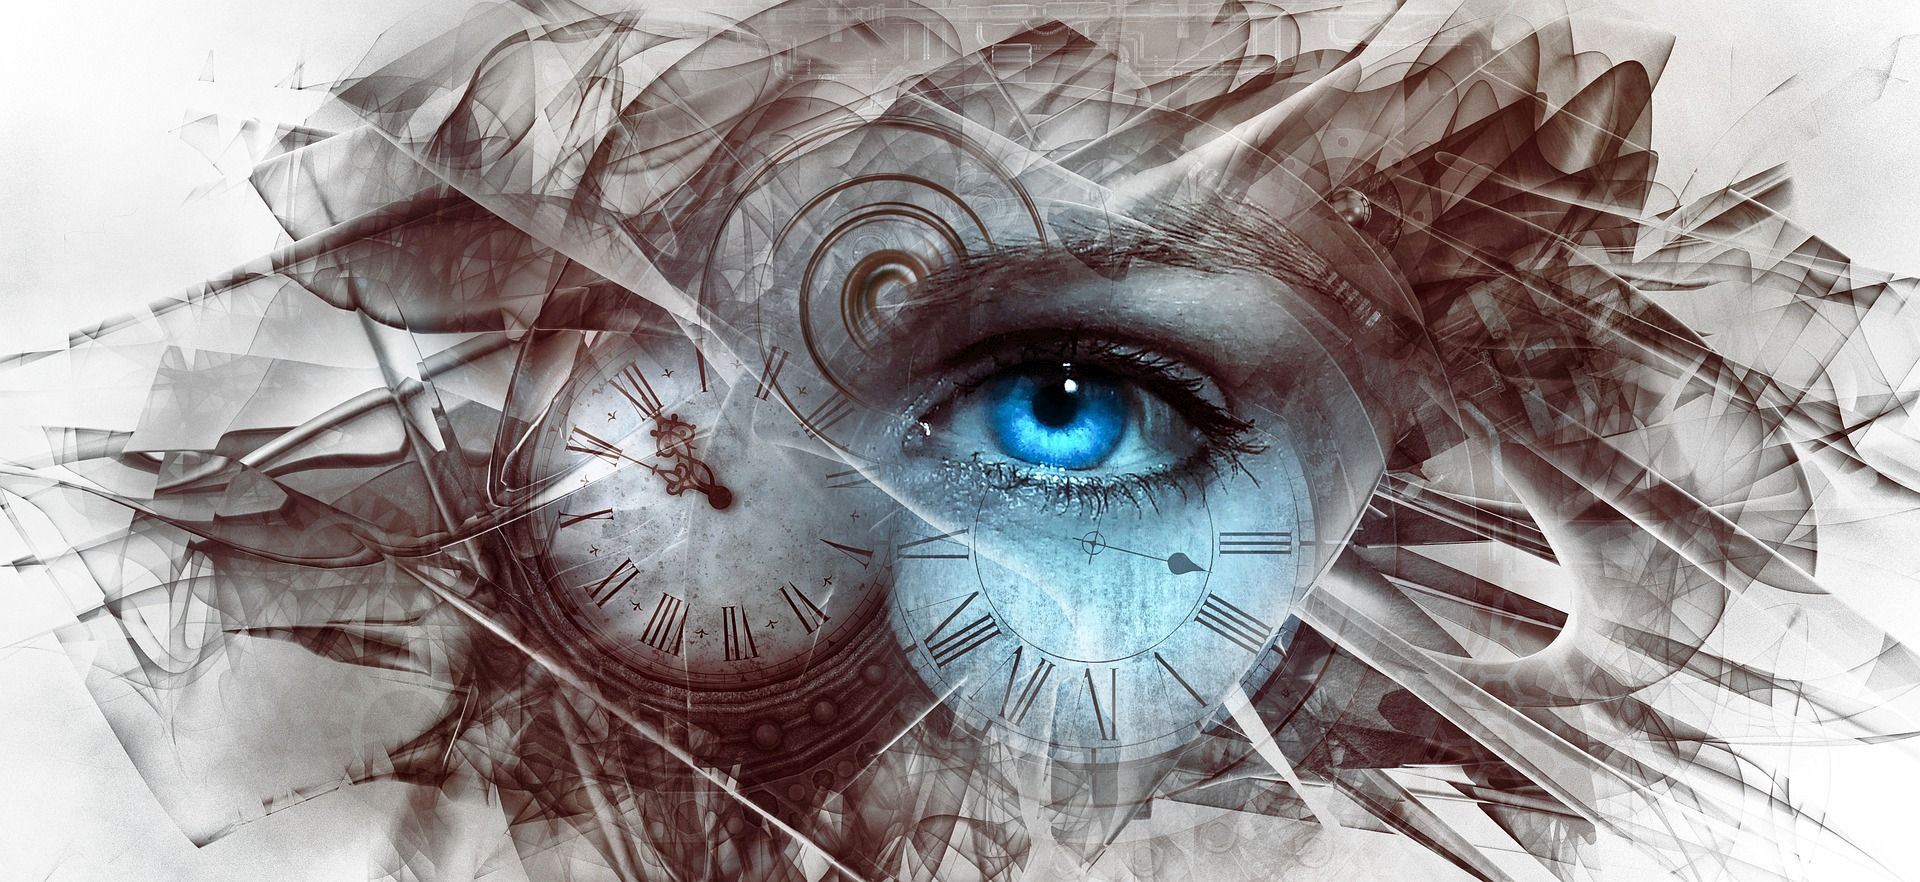 Abstract art depicting a human eye in the center of distorted clocks inferring a link to an alter-conscious state of mind.